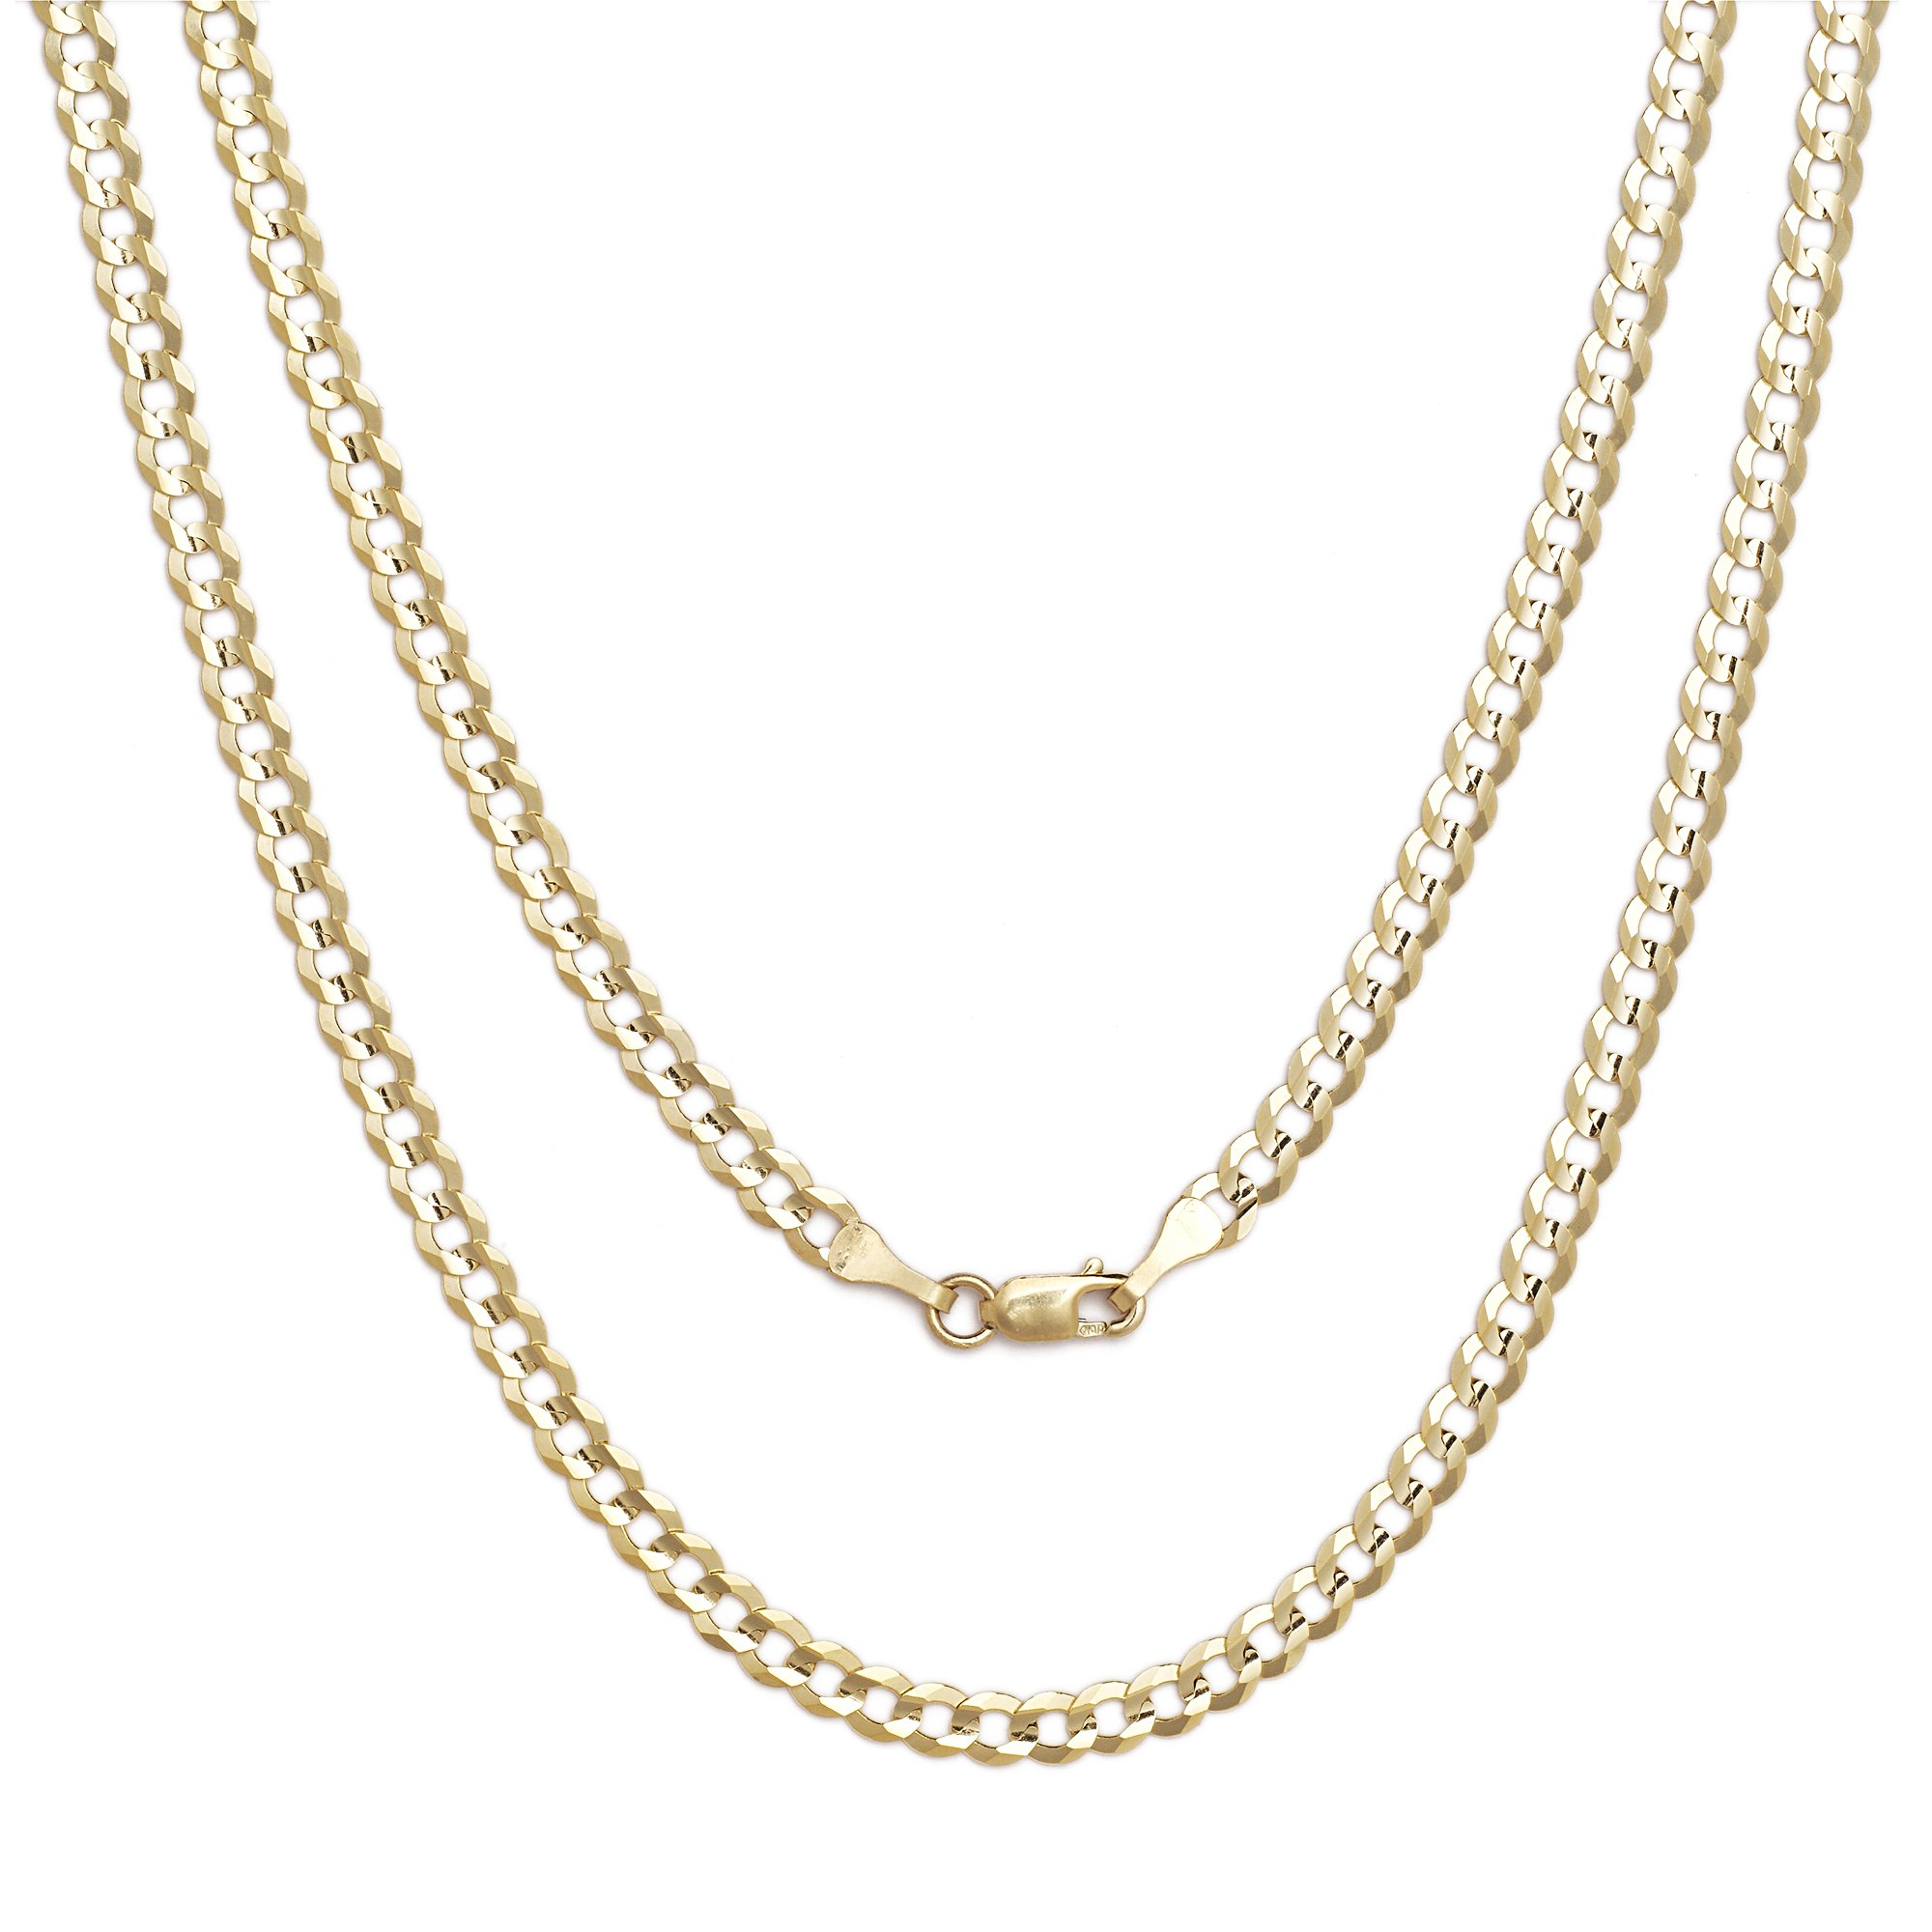 24 Inch 10k Yellow Gold Curb Cuban Chain Necklace for Men and Women, 0.16 Inch (4mm)